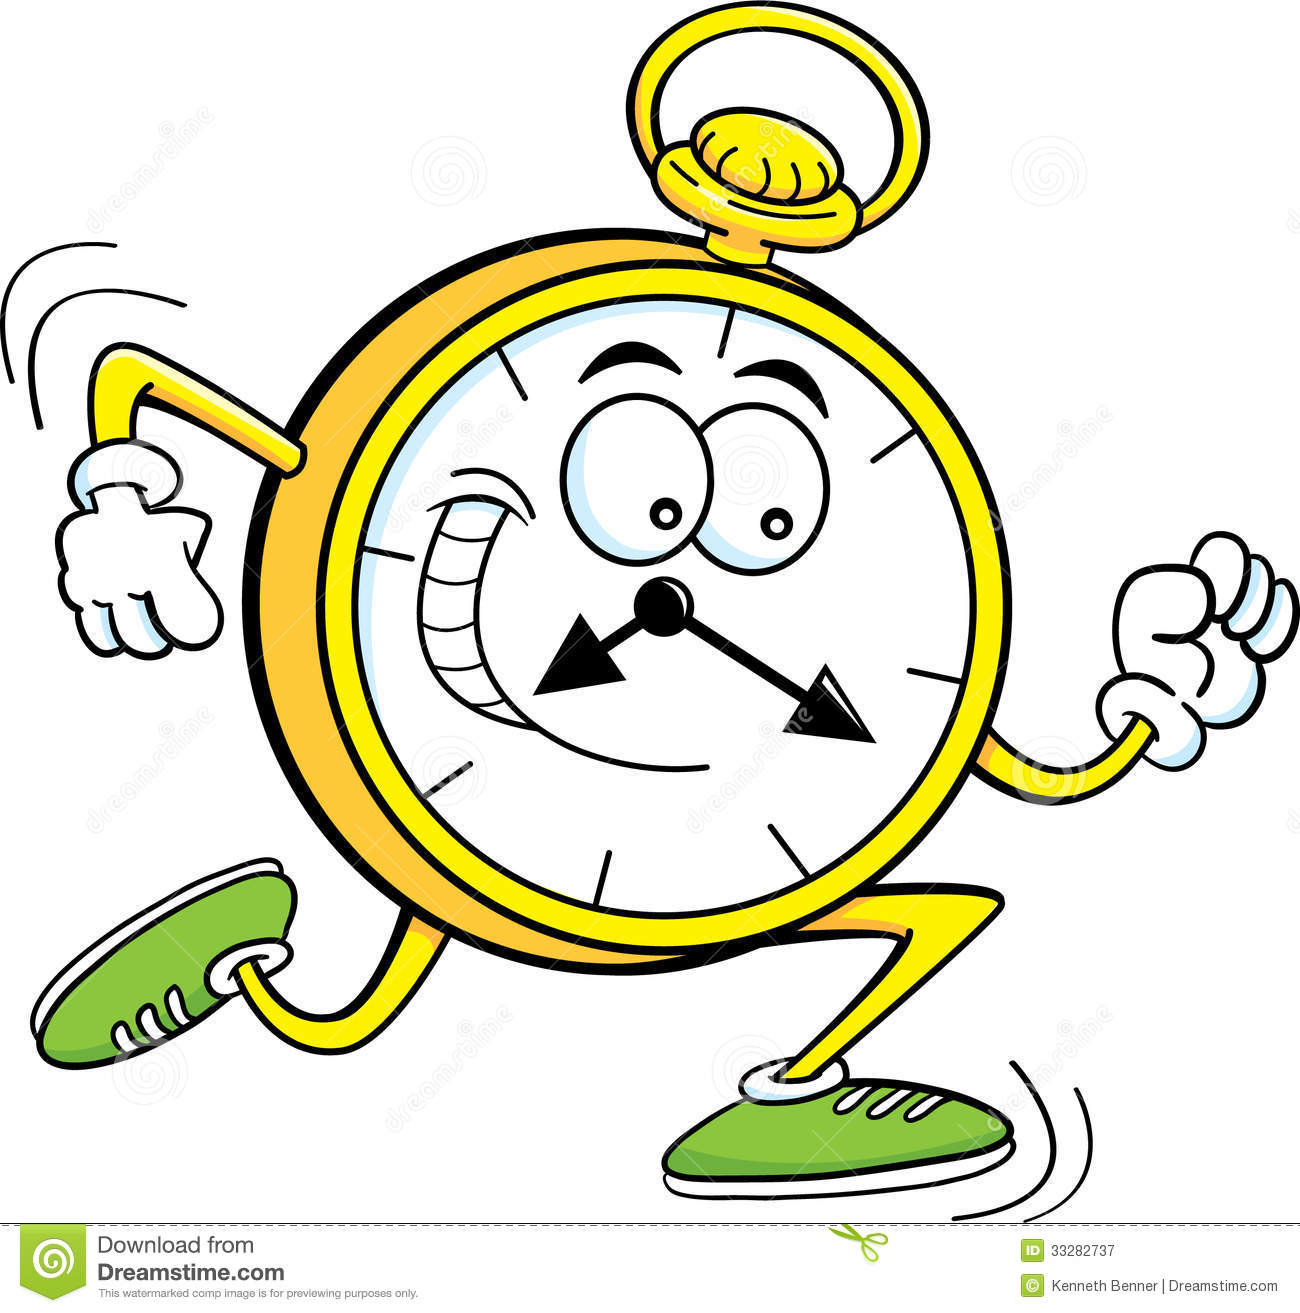 cartoon pocket watch stock vector illustration of cartoon 33282737 rh dreamstime com running clock clip art Wall Clock Clip Art